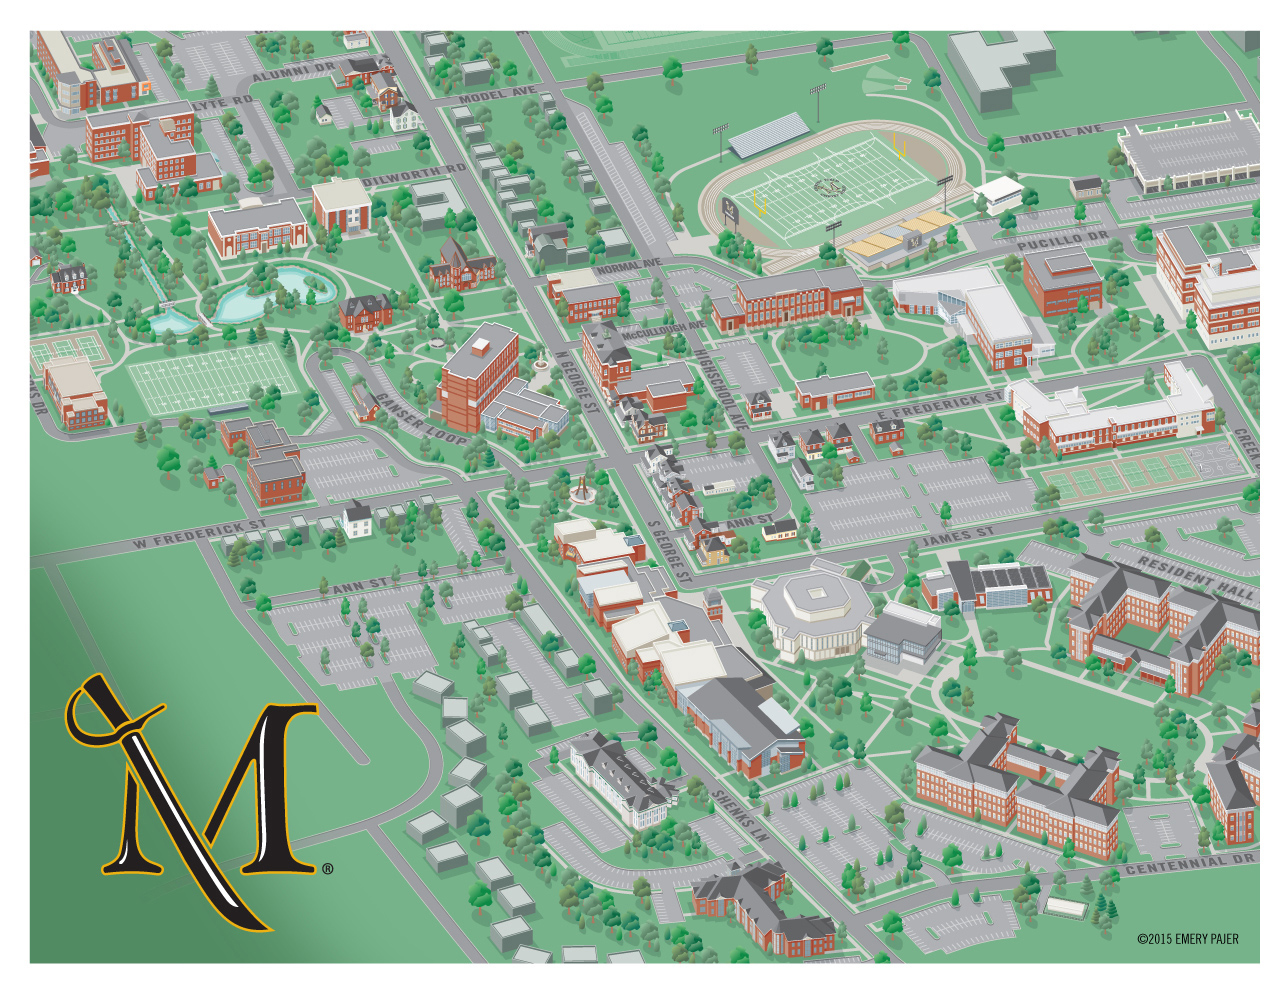 Cumberland County College Campus Map.Wayfinding City Park And College Campus Map Illustration Design